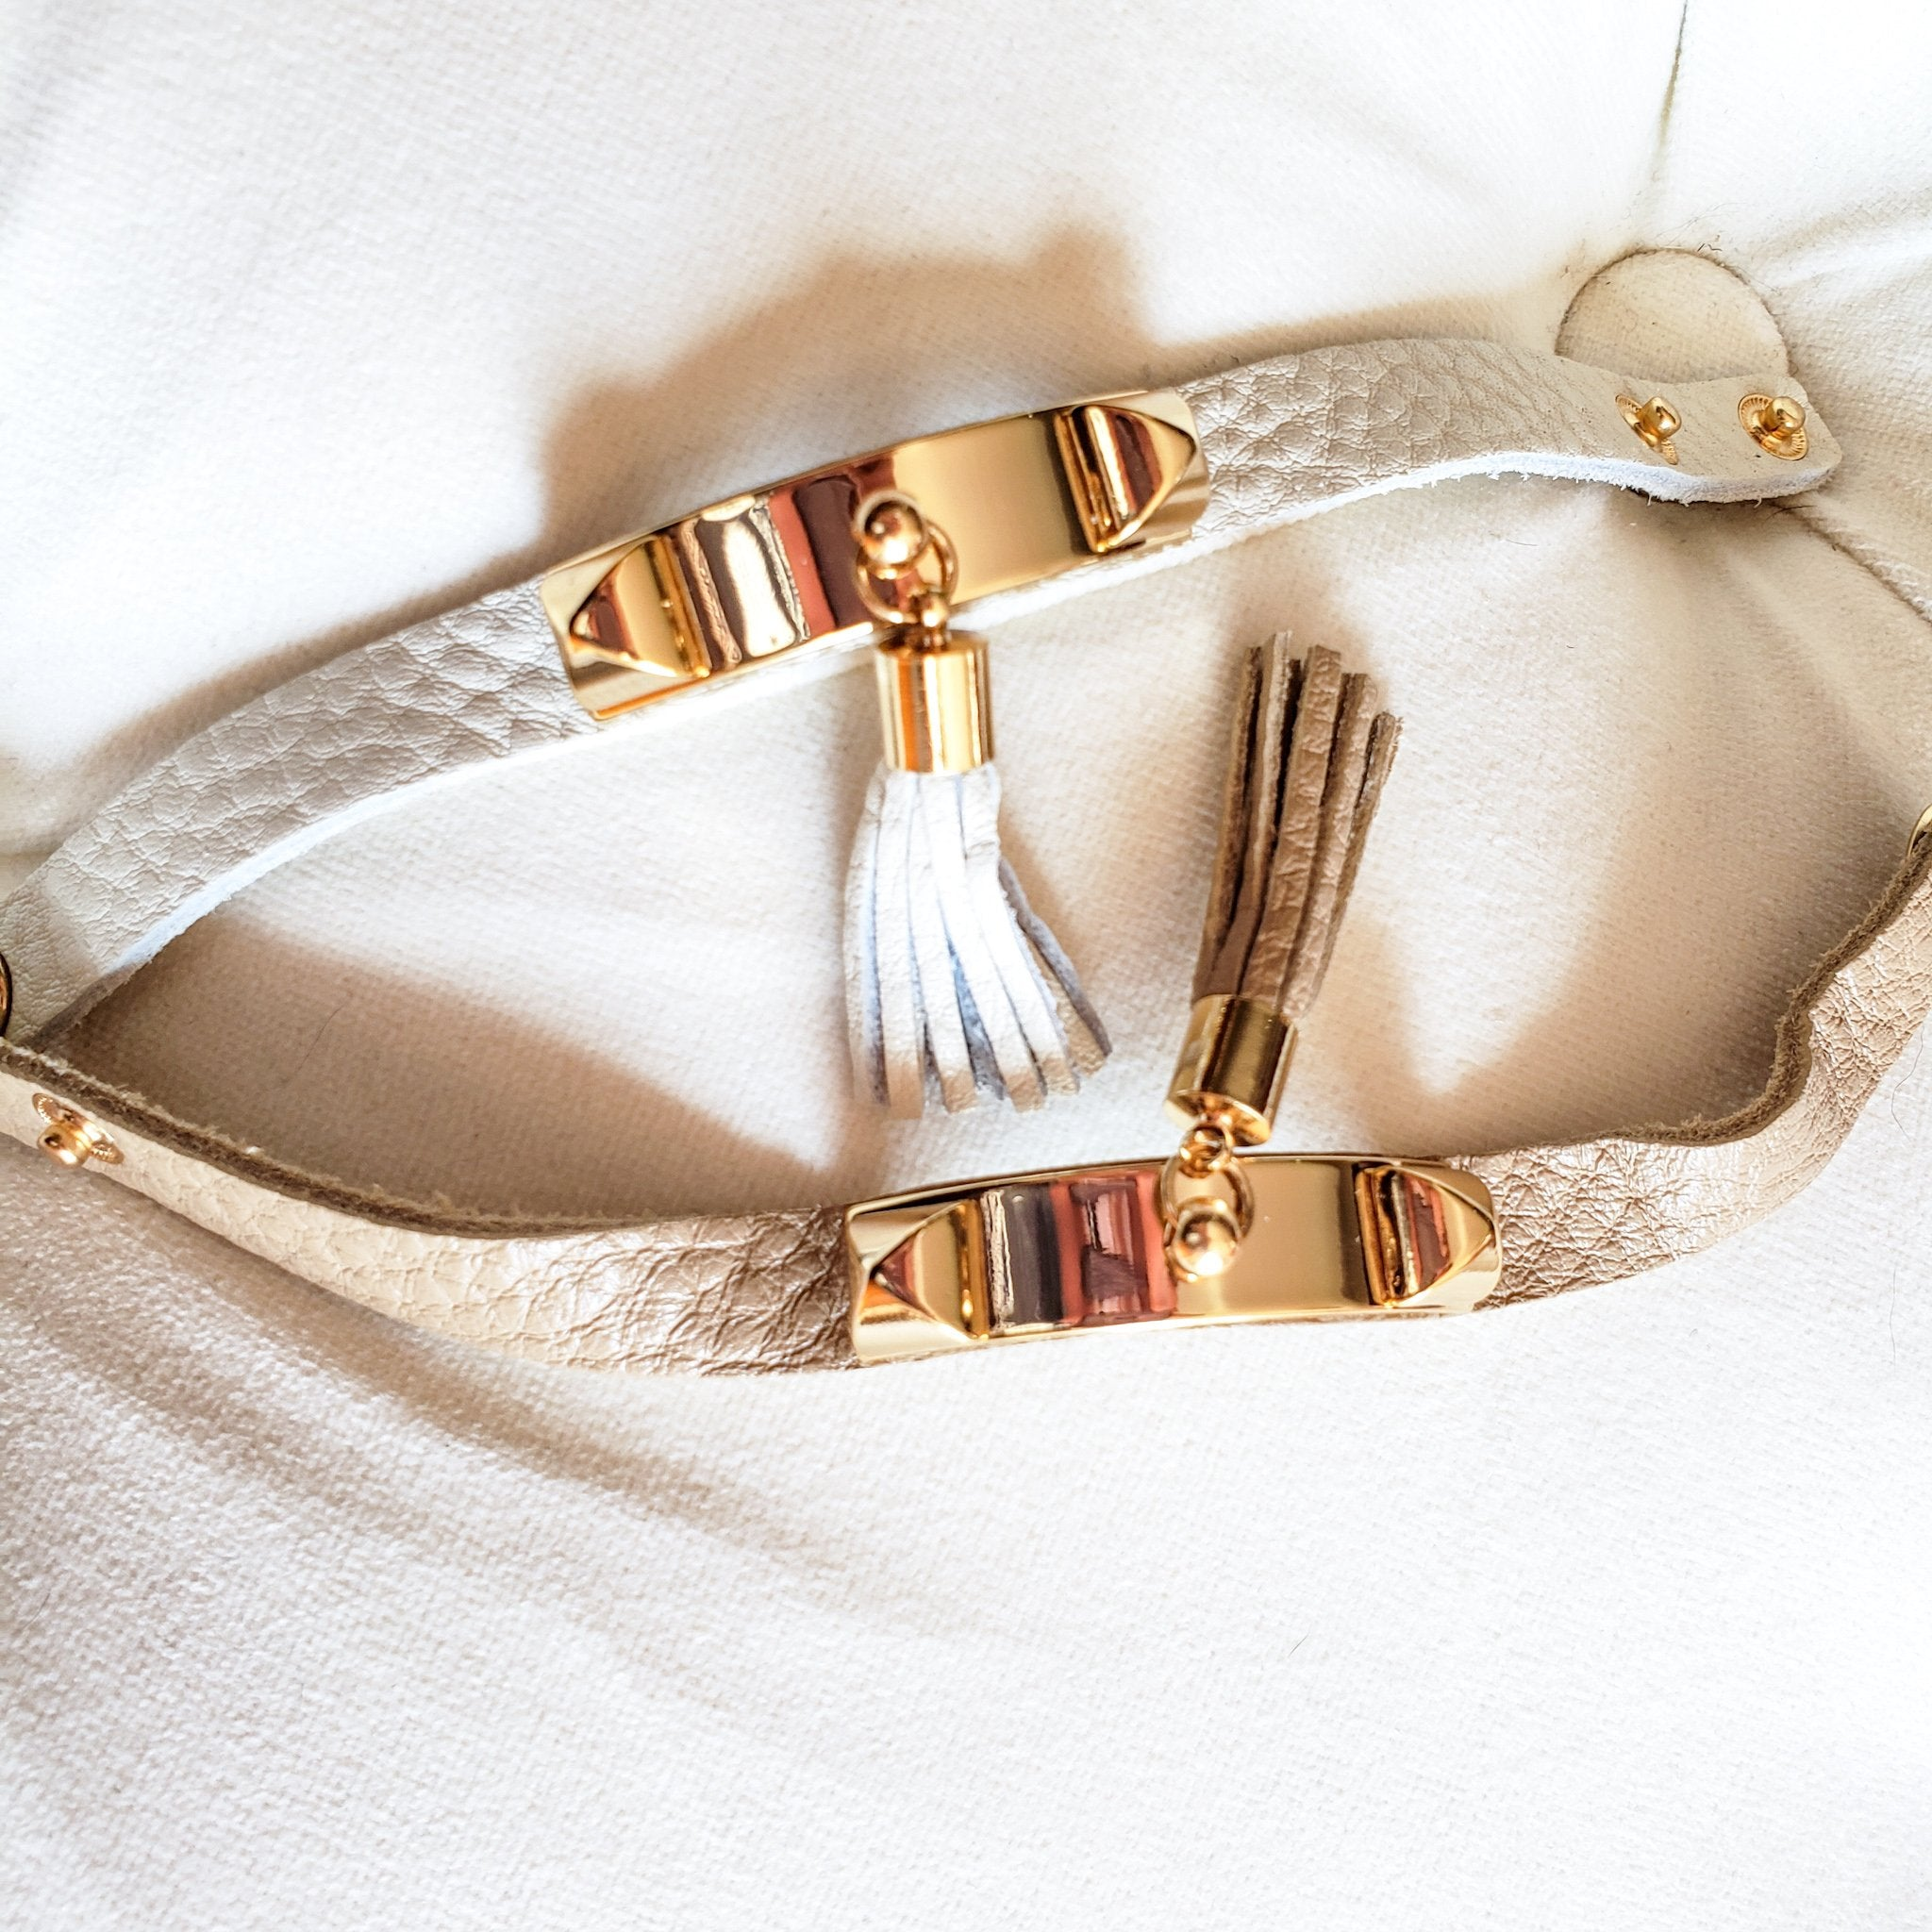 Boho Tassel Leather Bracelet (Beige)